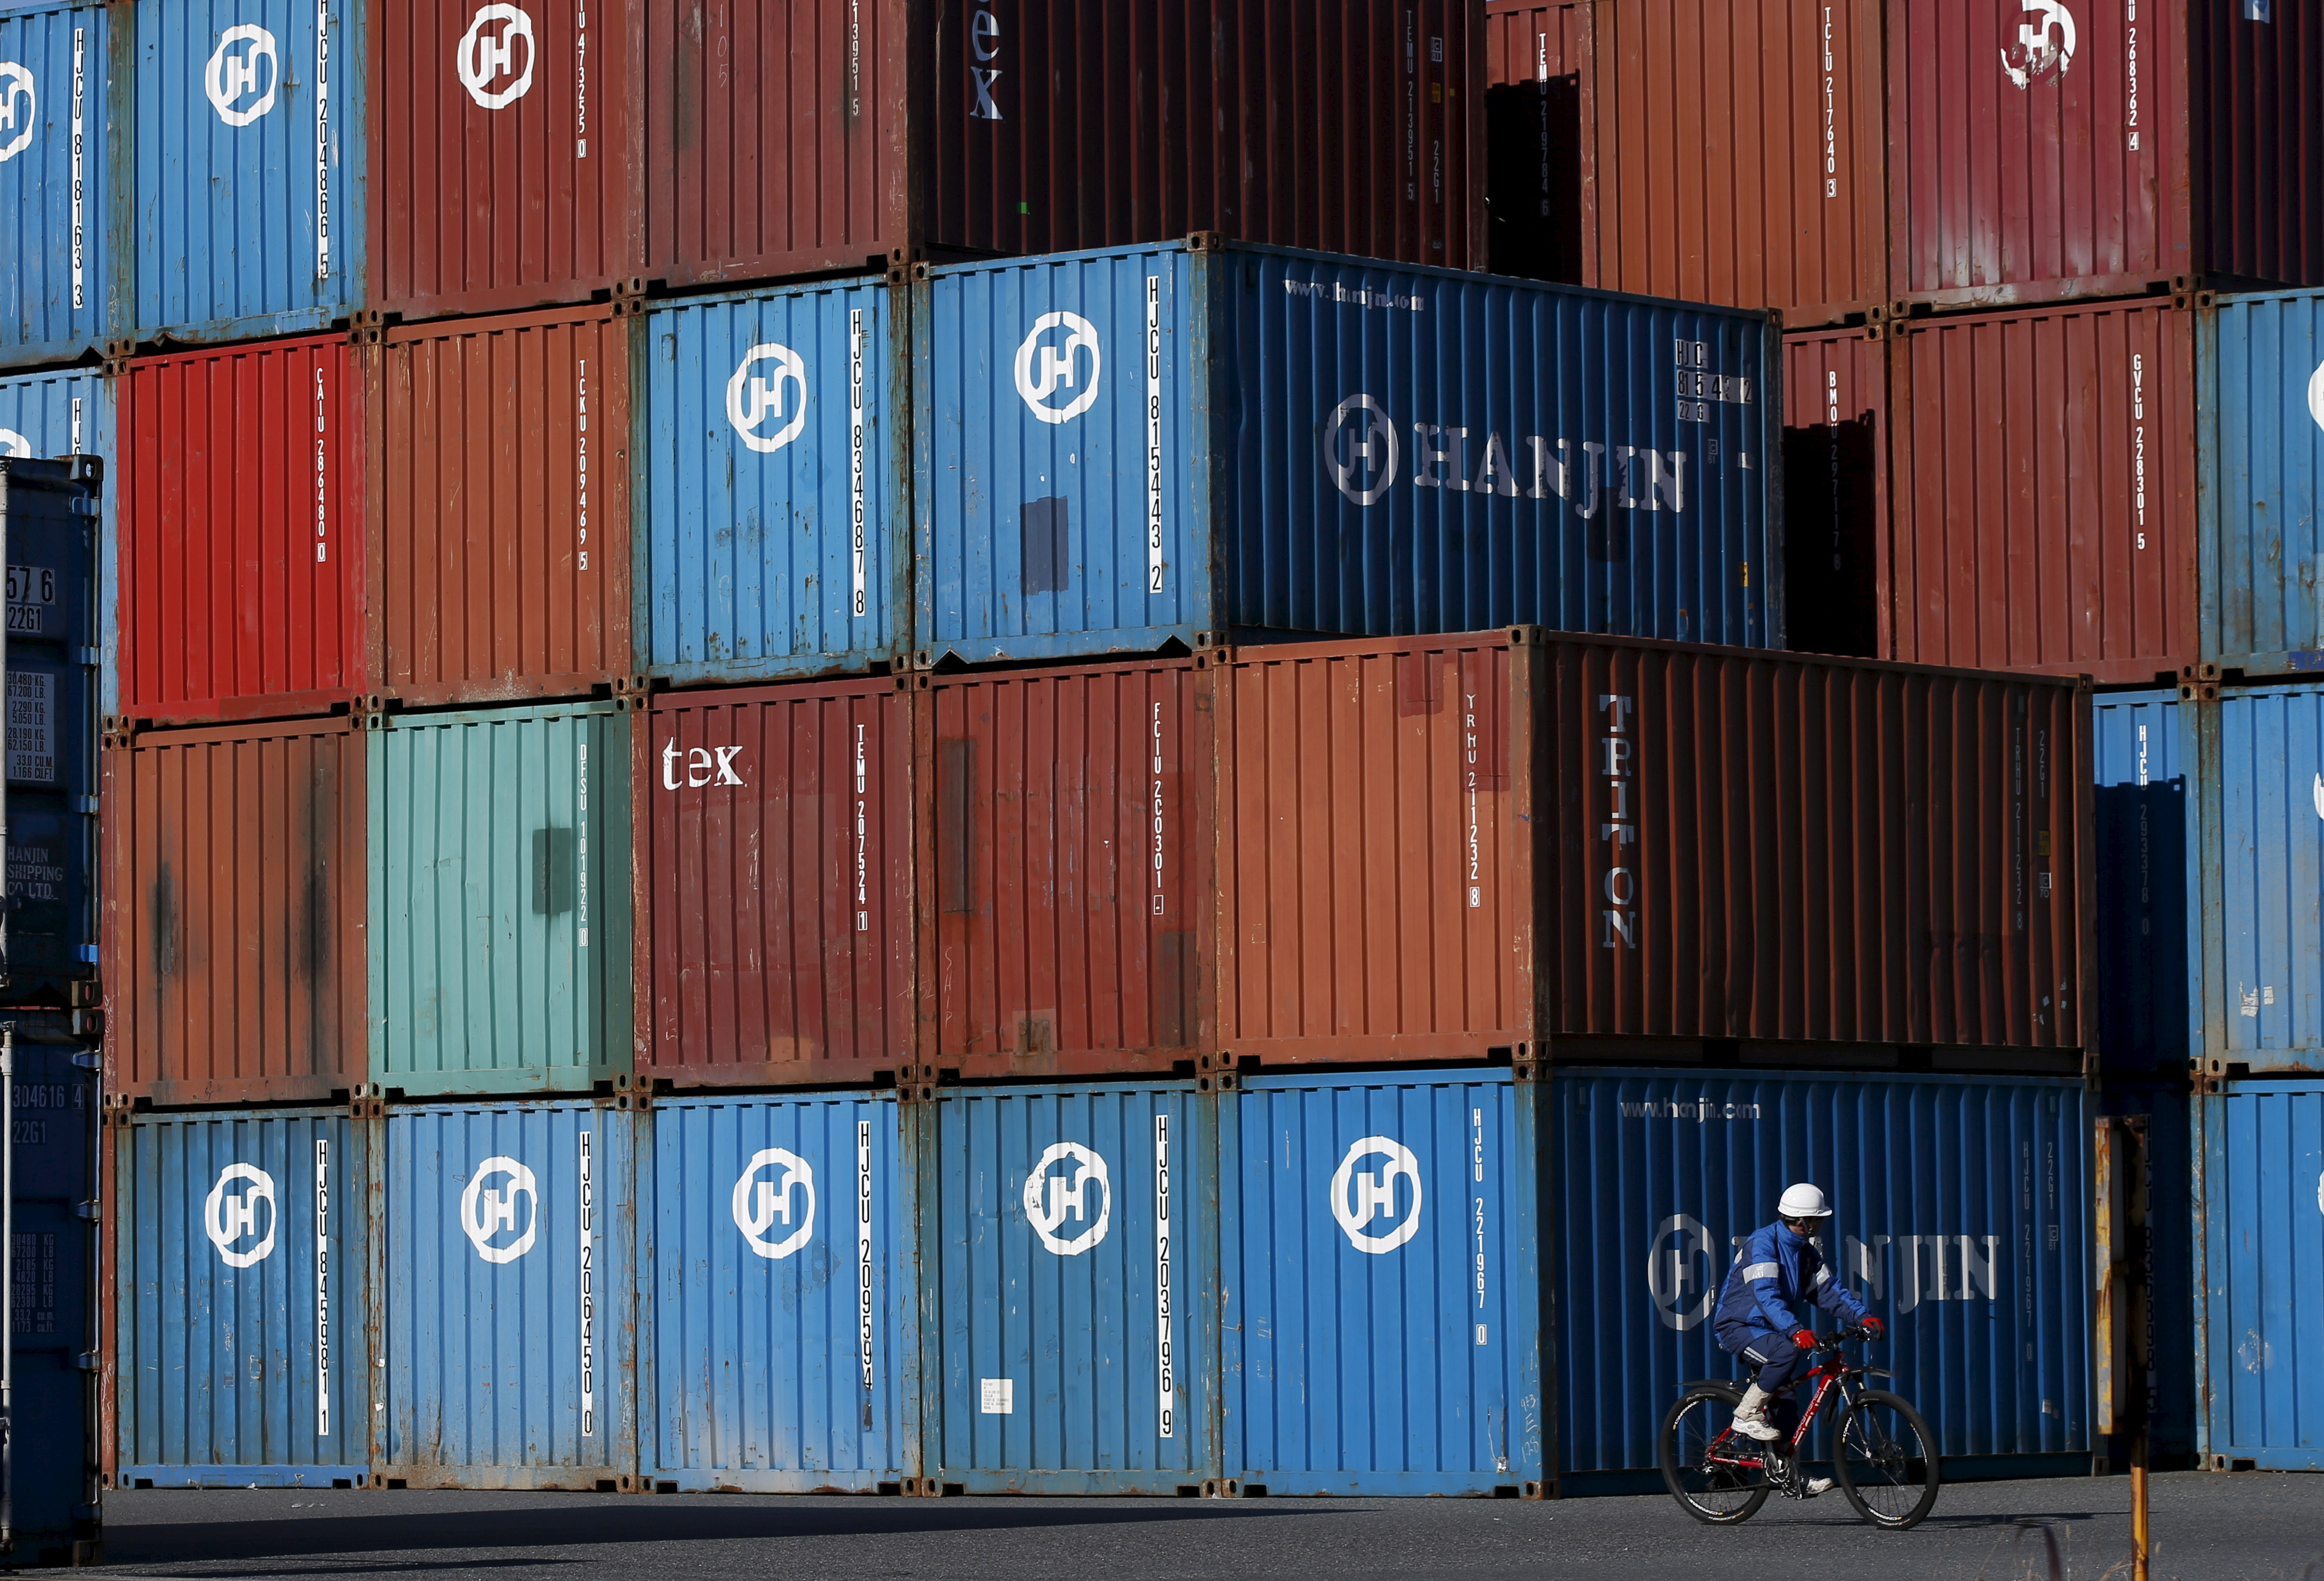 A worker rides a bicycle in a container area at a port in Tokyo, Japan January 25, 2016. REUTERS/Toru Hanai